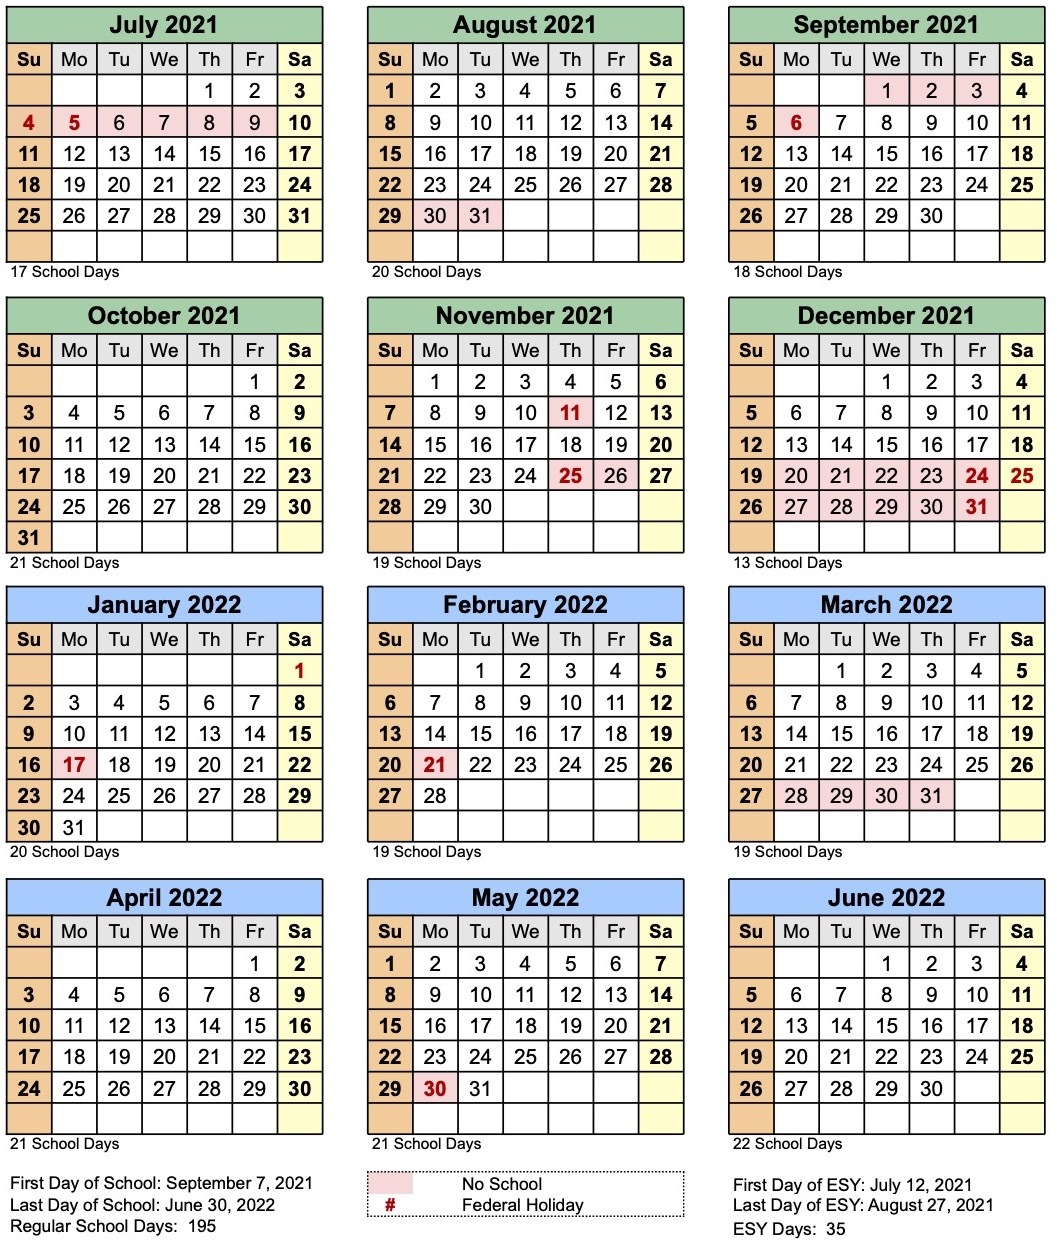 OASIS calendar for the 2020-2021 school year